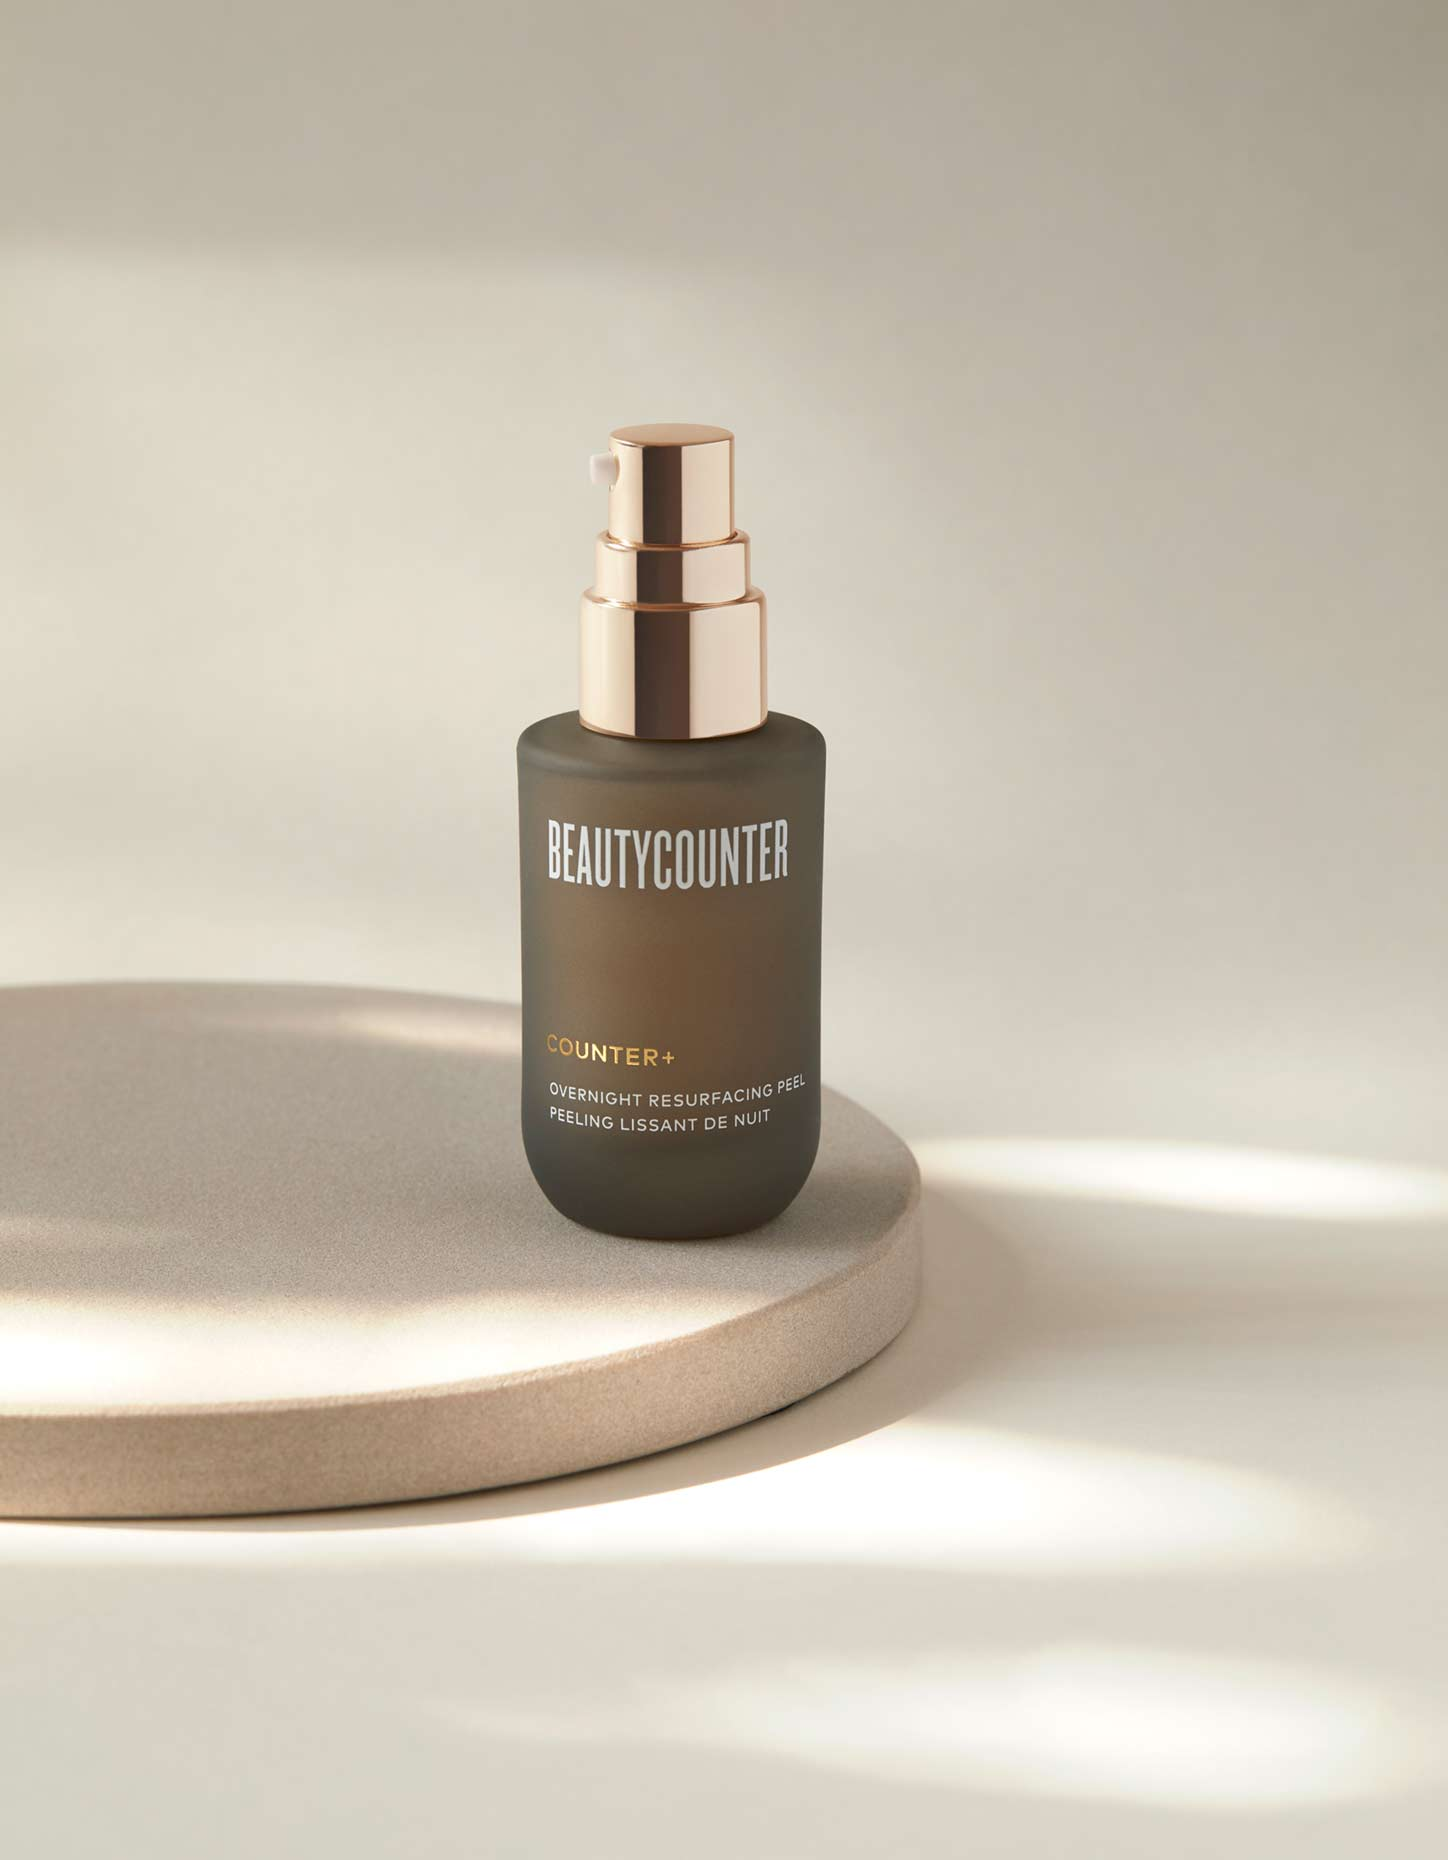 Beauty Counter product photography by Teri Lyn Fisher